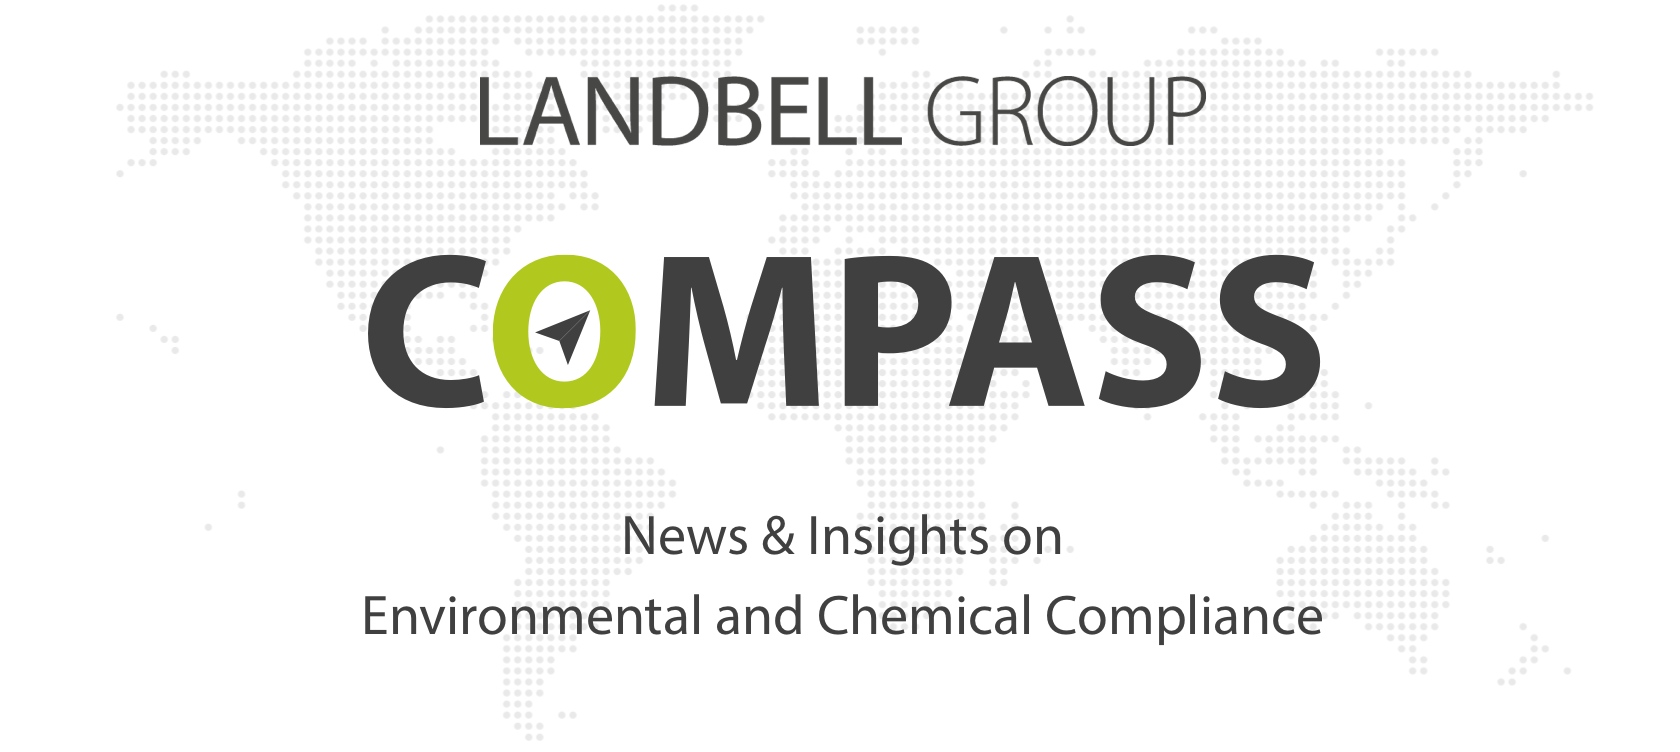 Landbell Group Compass – News & Insights on Environmental and Chemical Compliance